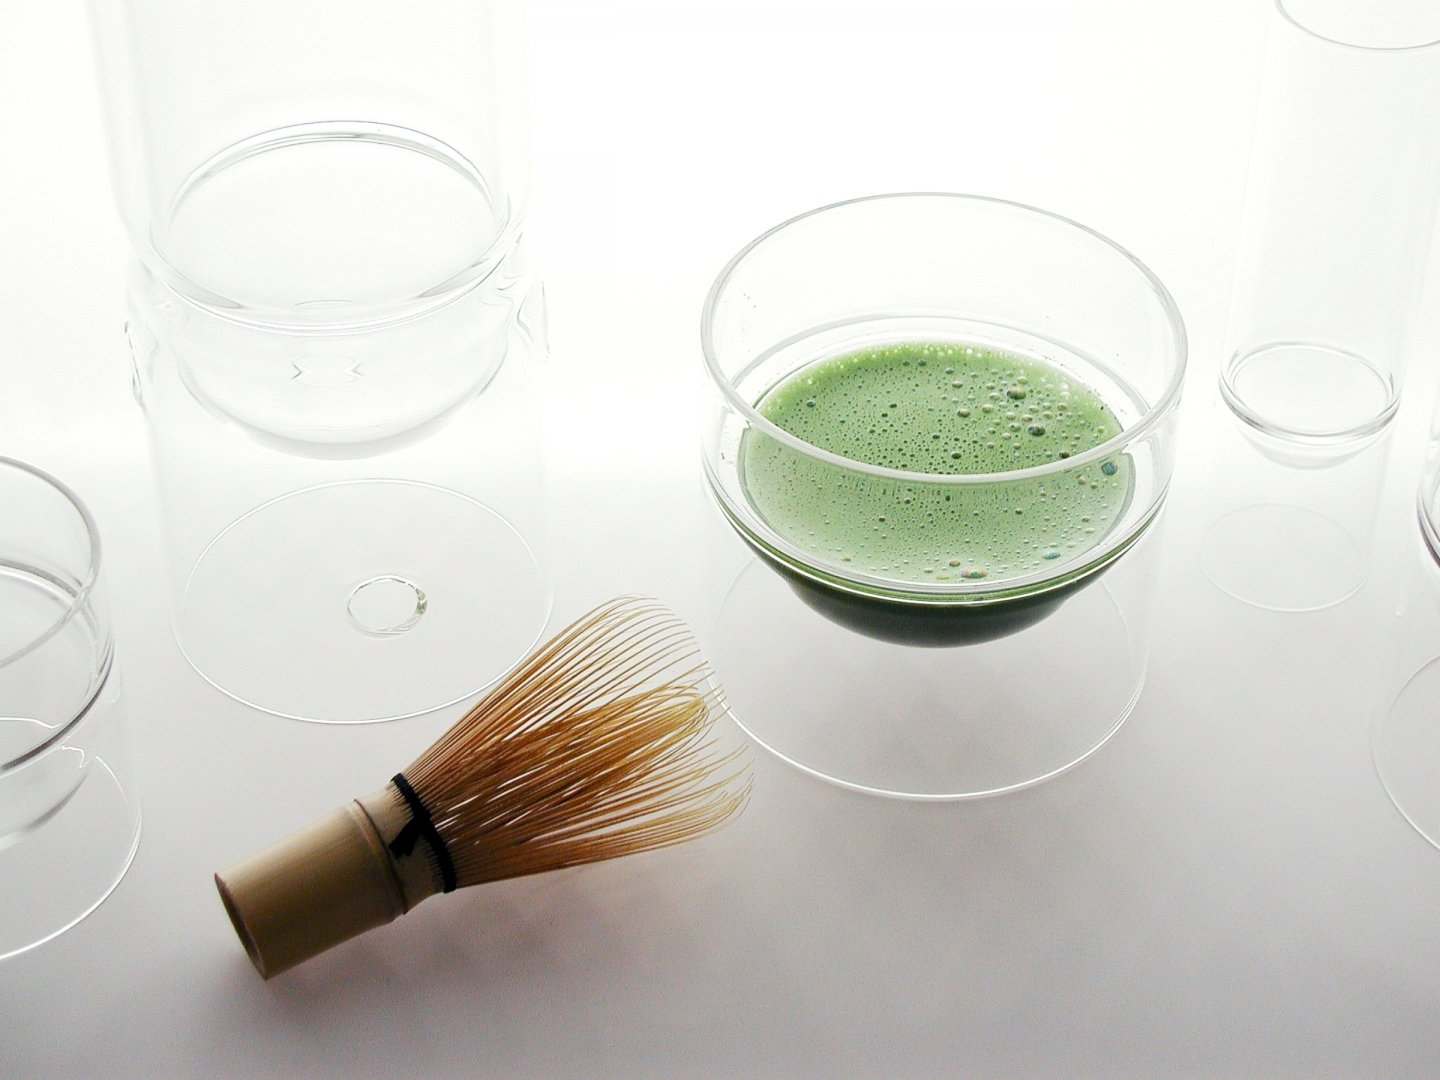 a bowl full of matcha and a traditional bamboo whisk